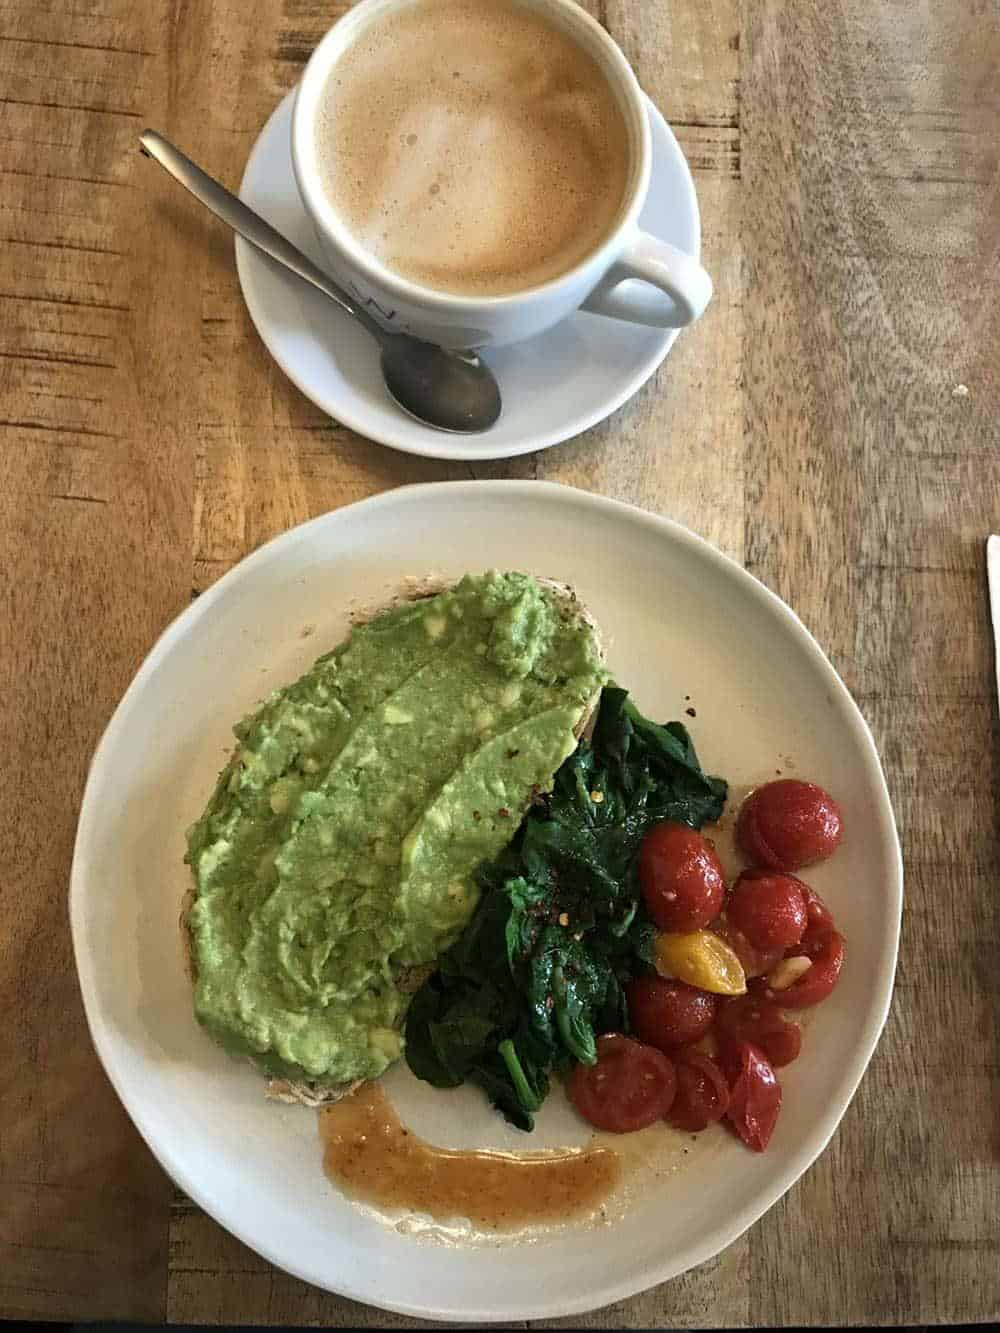 Vegan brunch at The Meets, Amsterdam